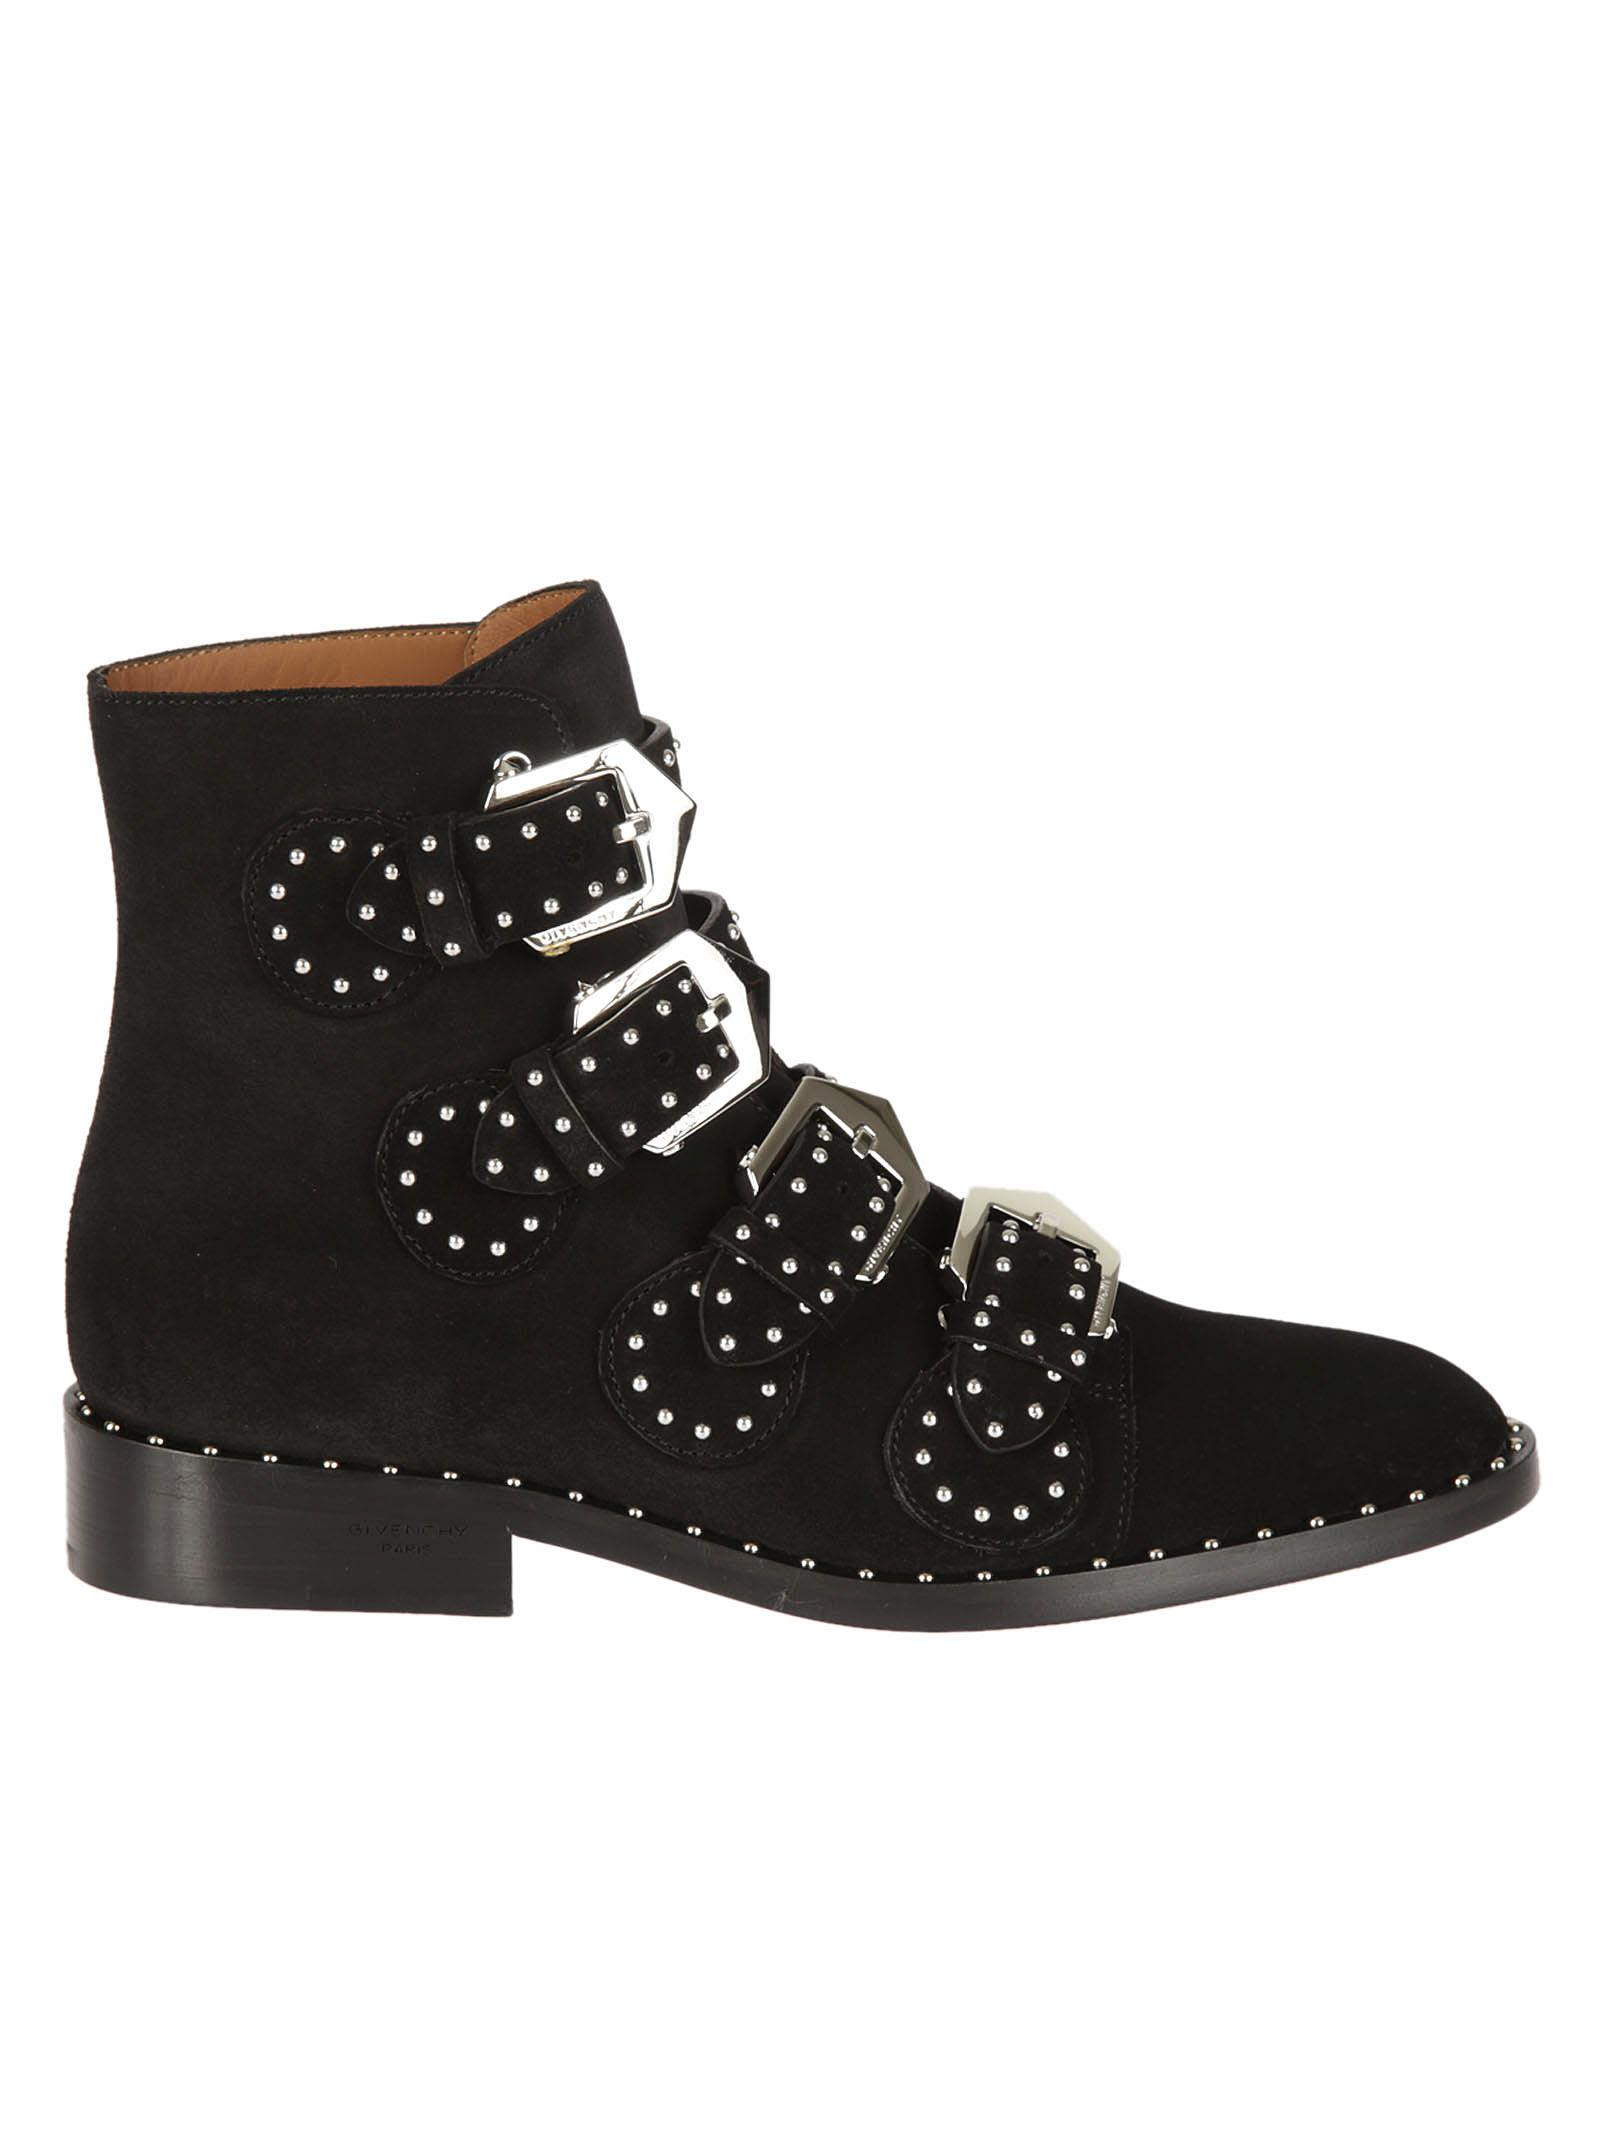 Givenchy Givenchy Studded Buckled Boots Black Women39s